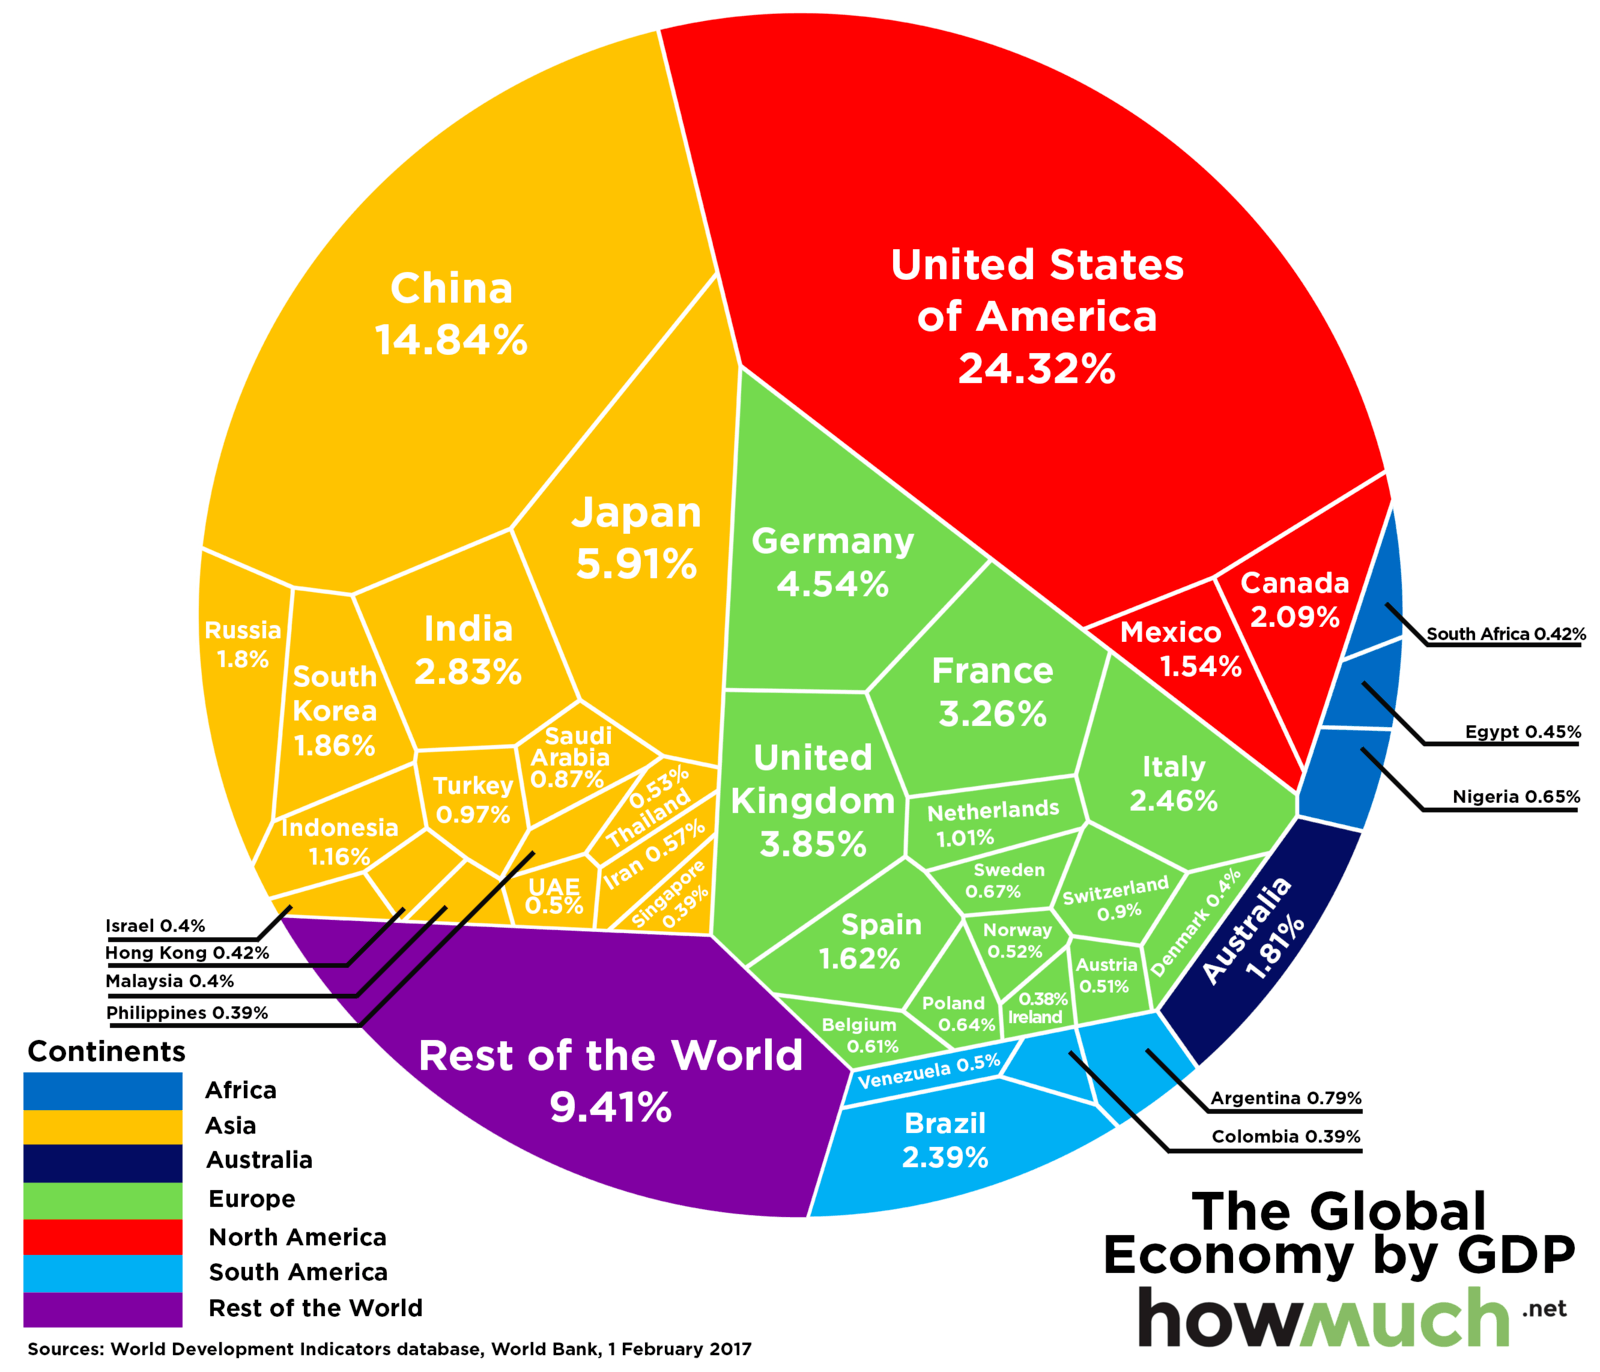 The Global Economy by GDP